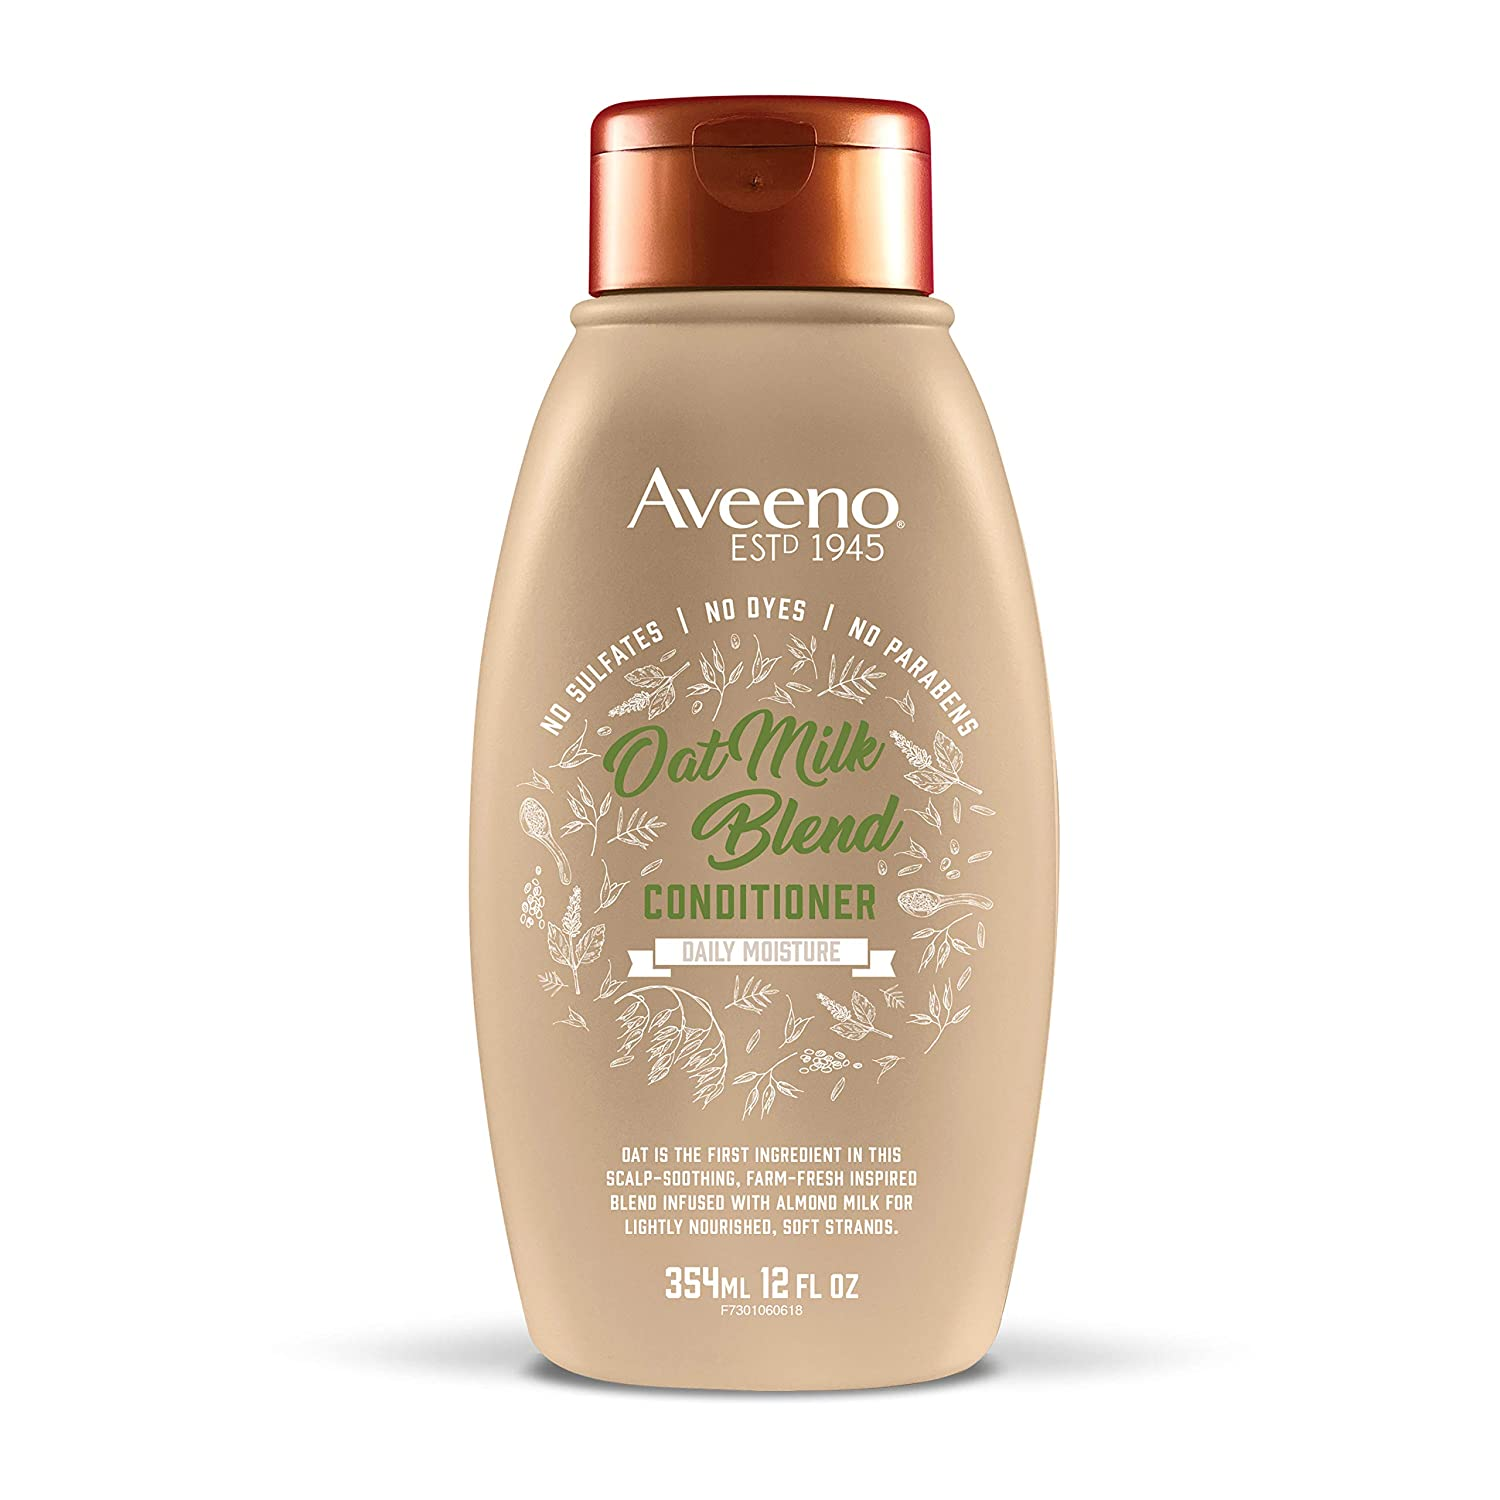 Aveeno Scalp Soothing Oat Milk Blend Conditioner, 12 Ounce